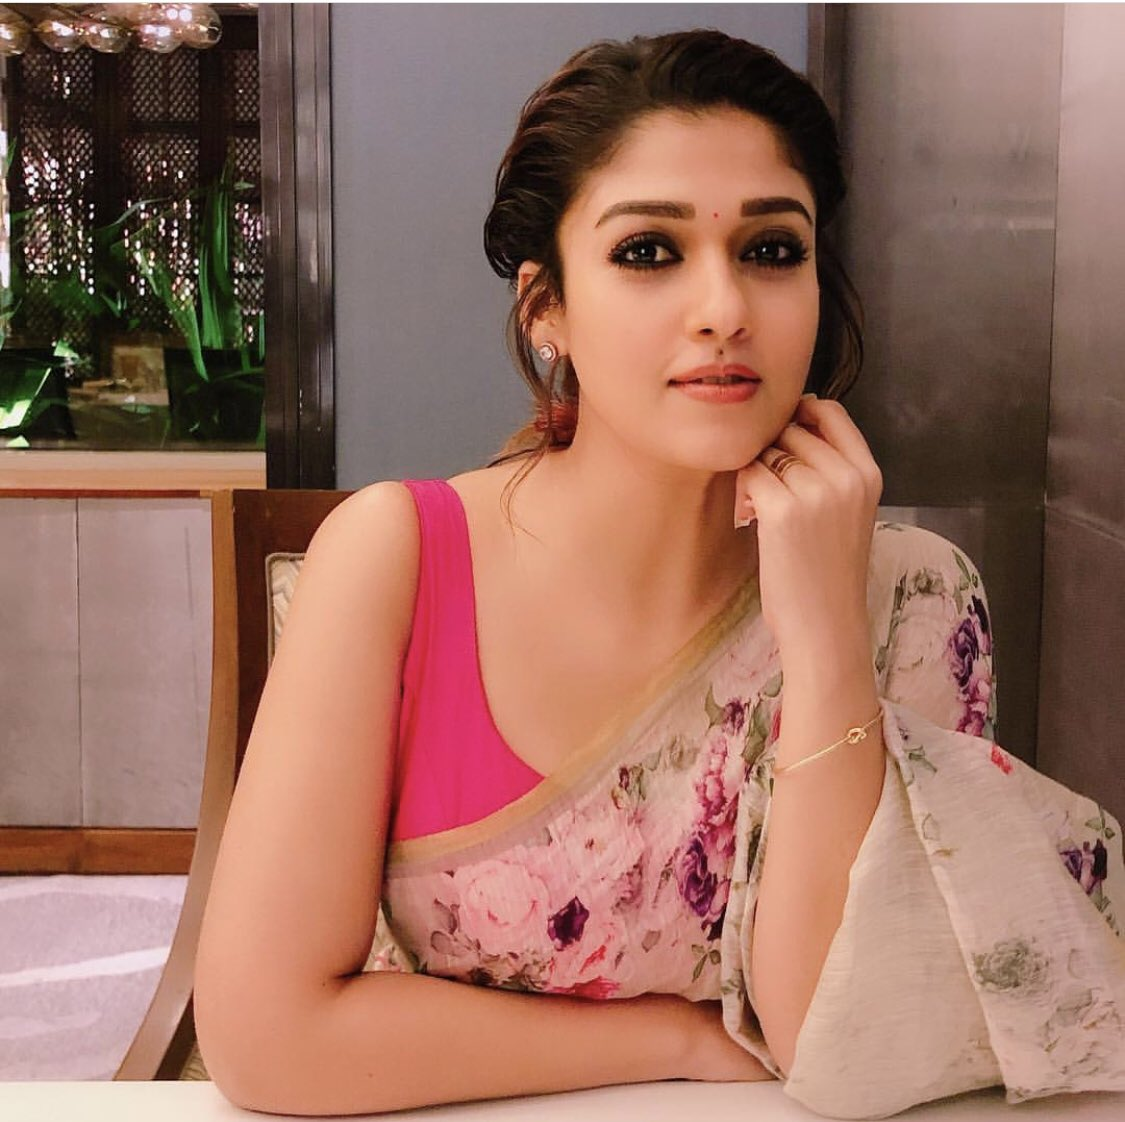 Actress Nayanthara Hot Photo Gallery with Biography Body measurements